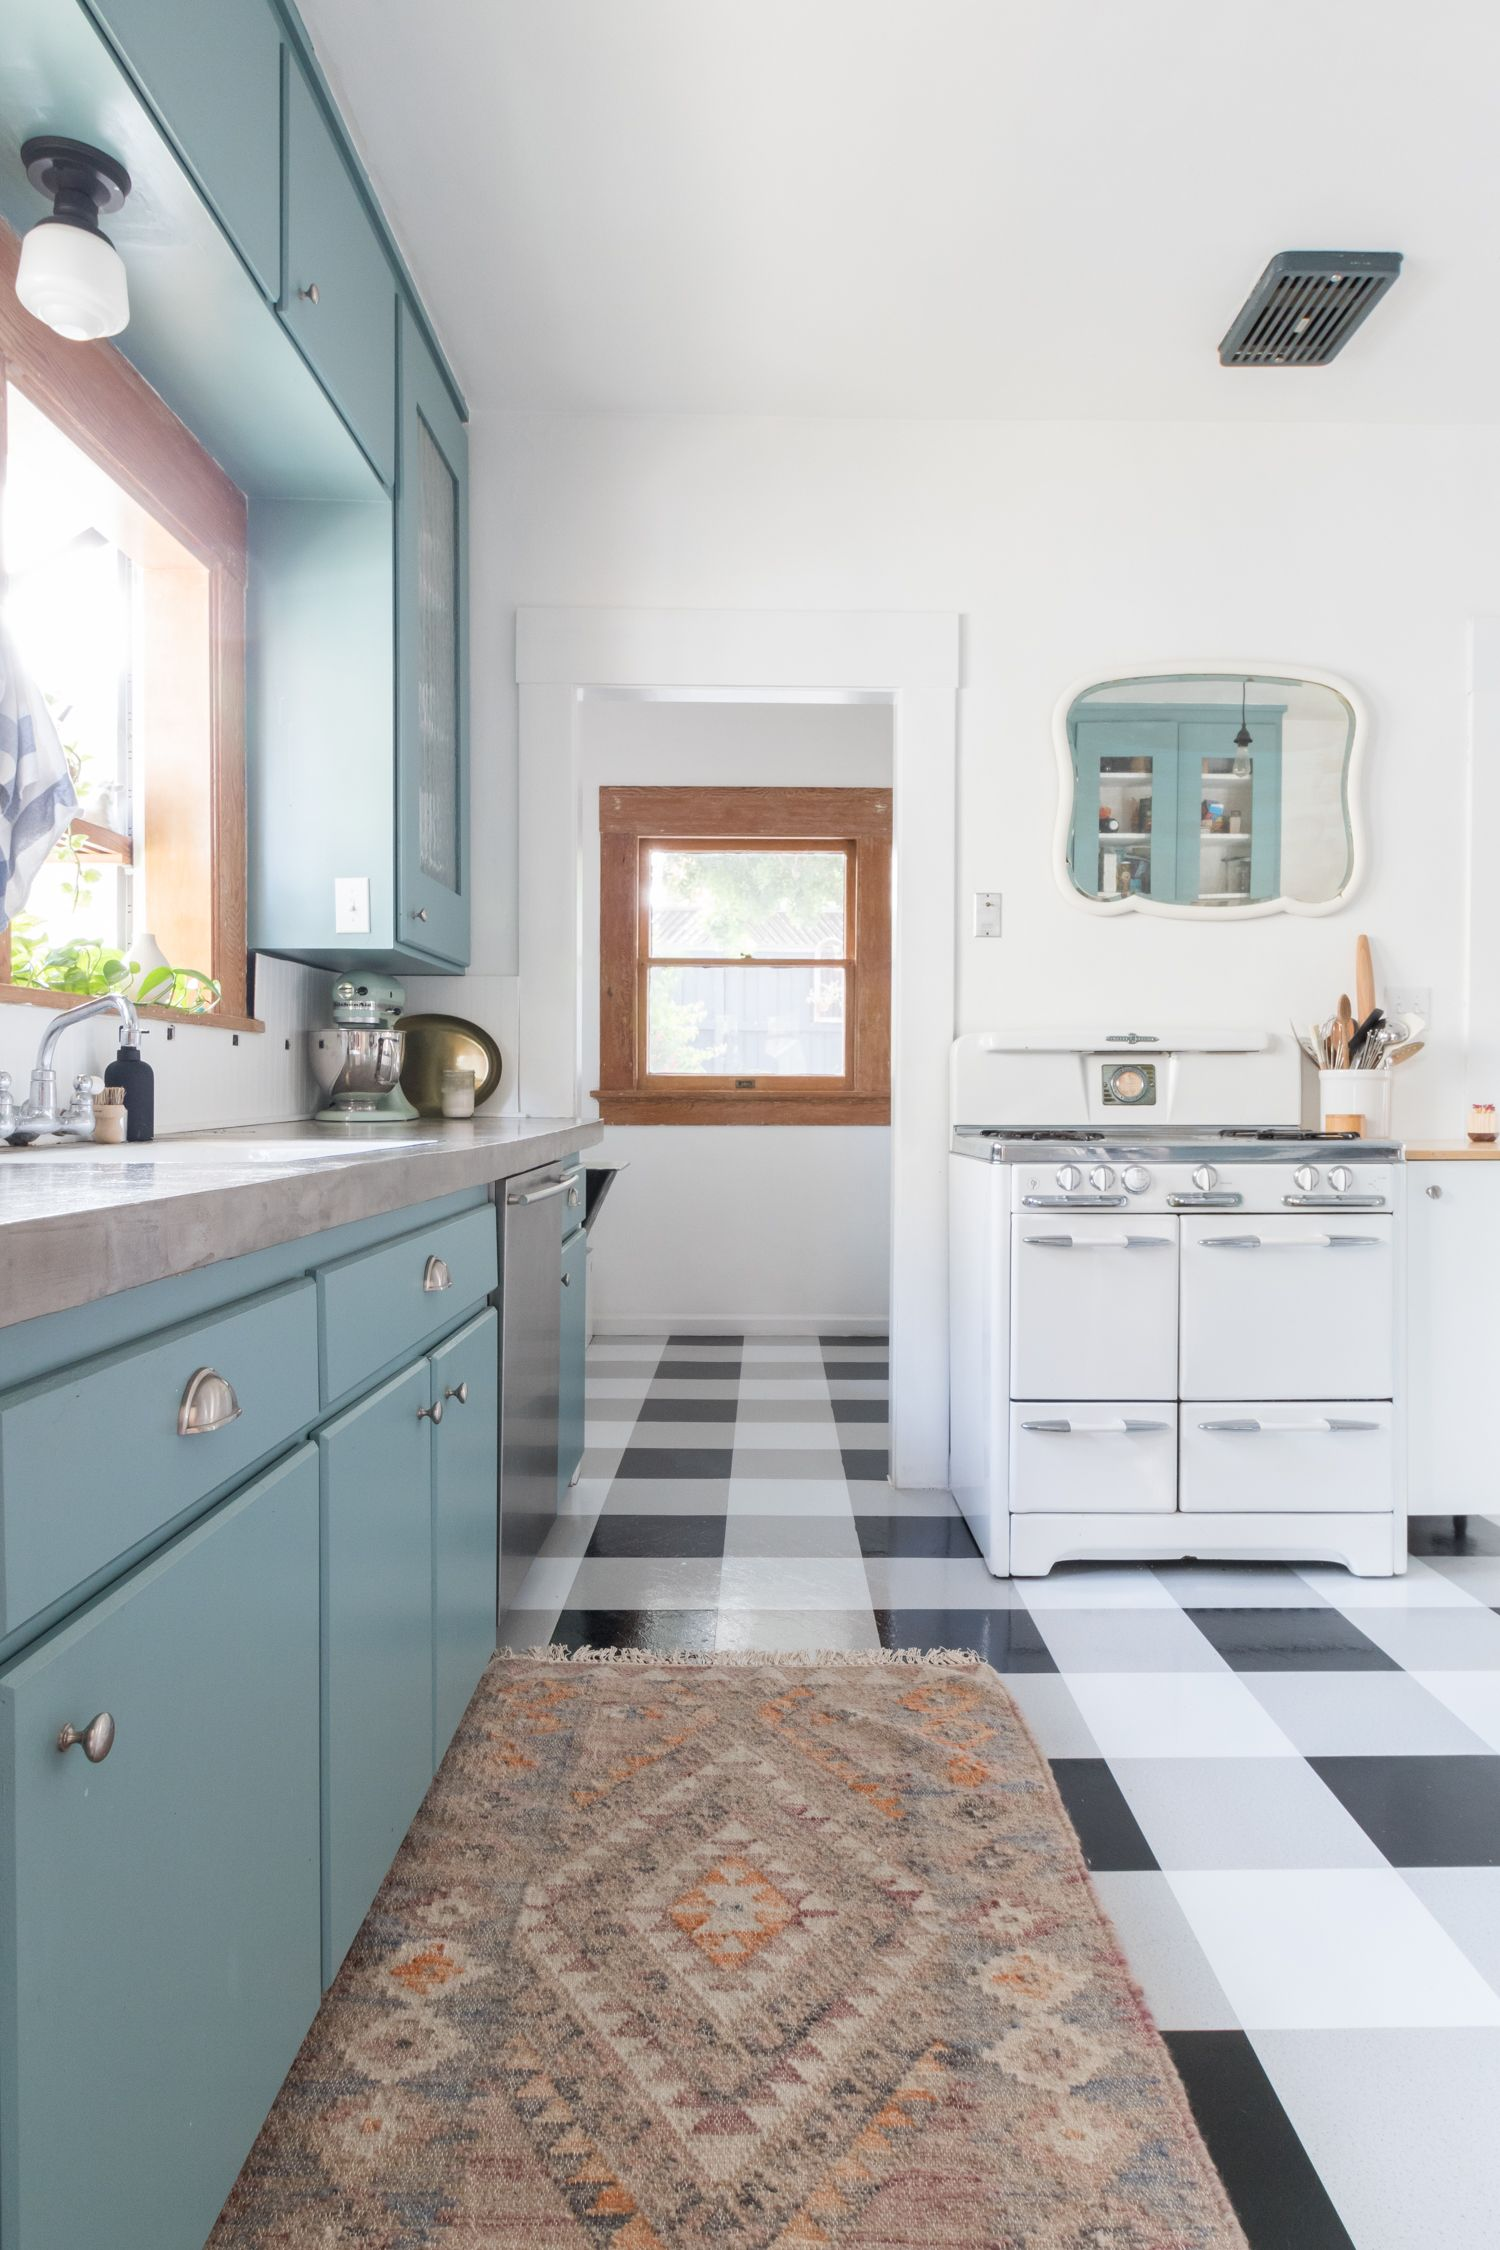 The Gold Hive Kitchen   Blue Cabinets, Black And White Buffalo Check Floors